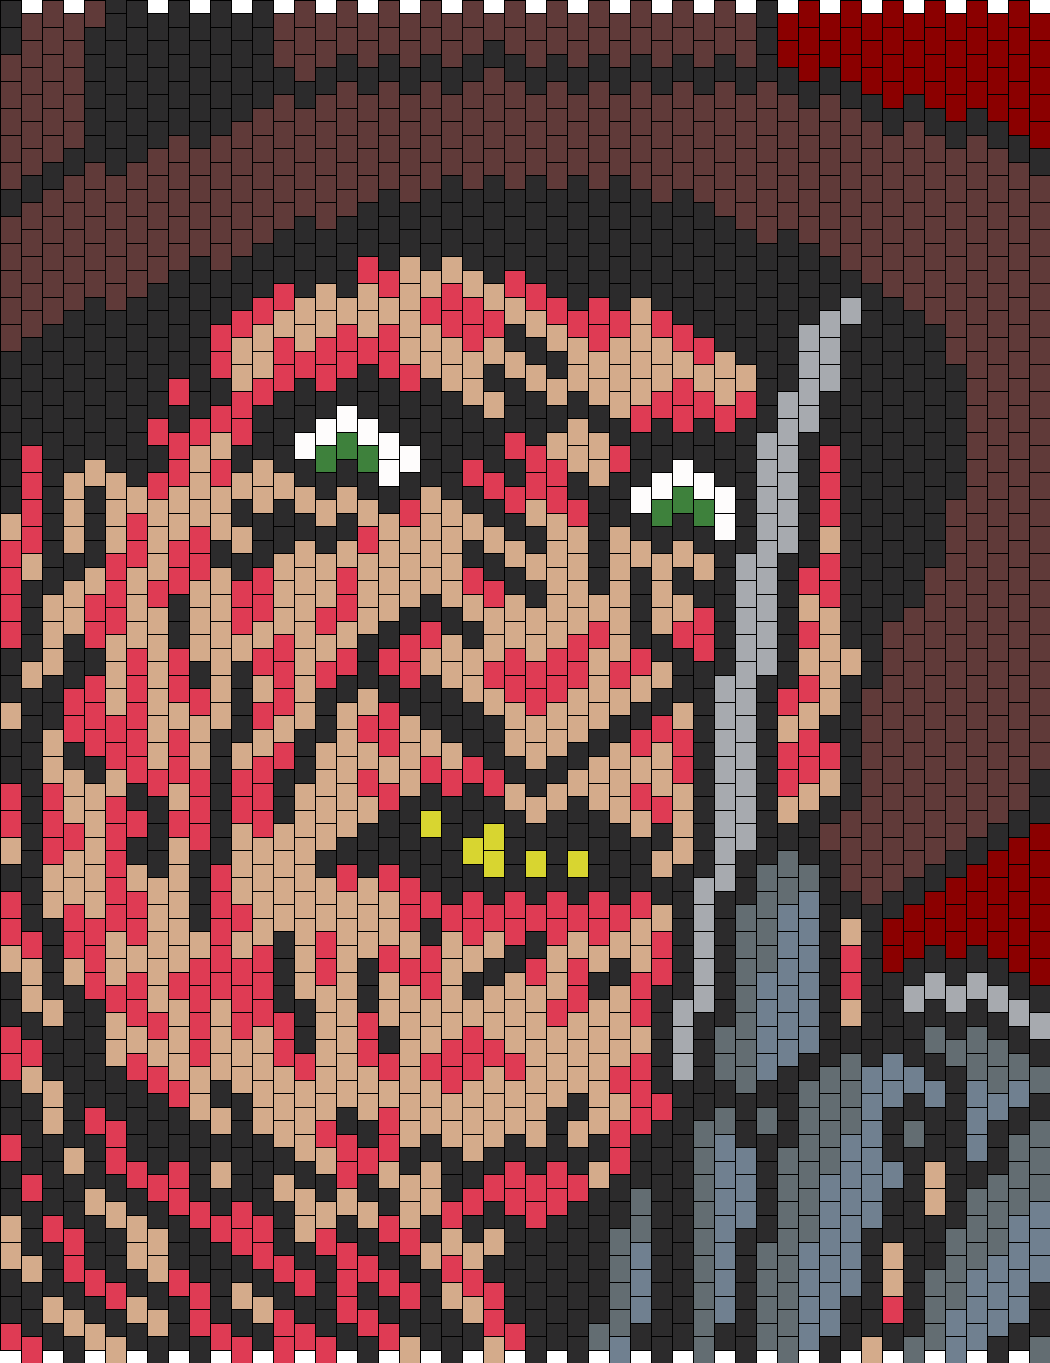 Freddy Krueger Bead Pattern